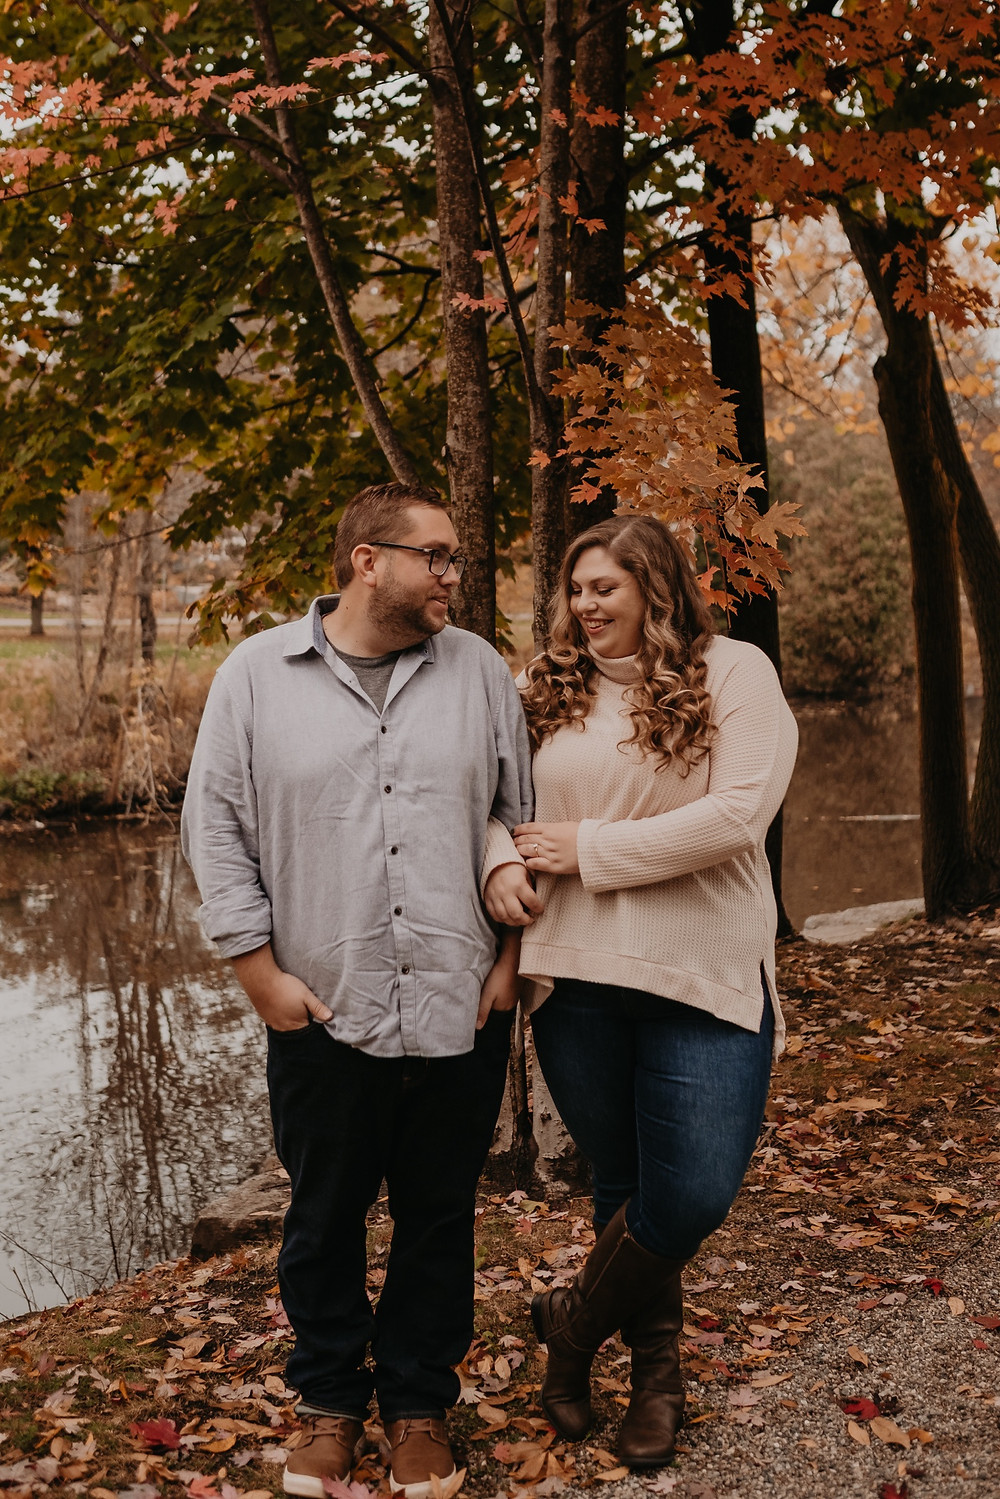 Couple walking through park with fall colors. Photographed by Nicole Leanne Photography.